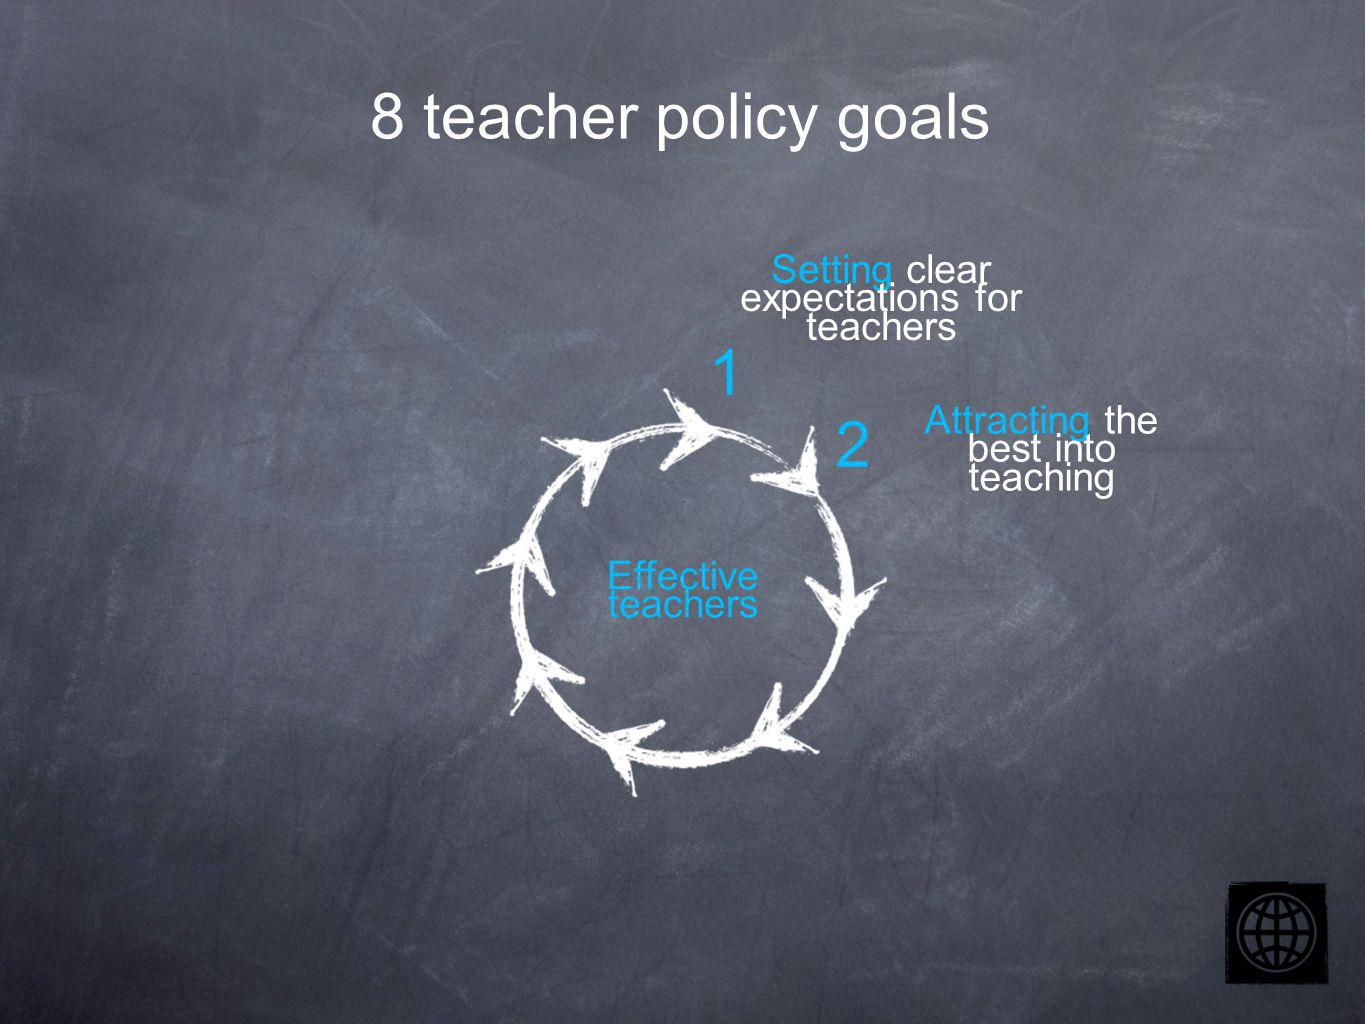 Setting clear expectations for teachers Attracting the best into teaching Effective teachers 2 1 8 teacher policy goals